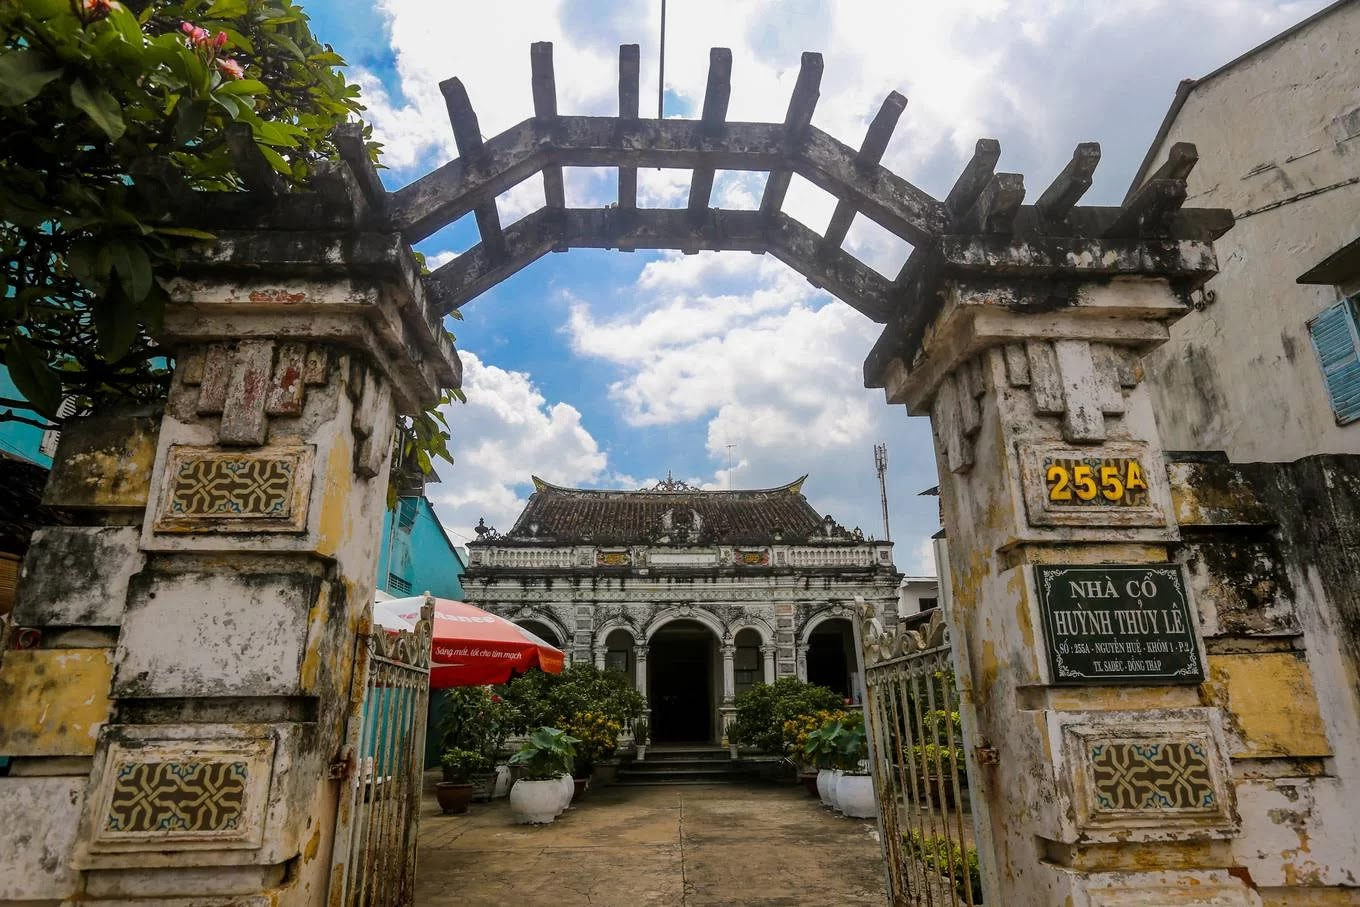 Overview of Huynh Thuy Le Ancient House